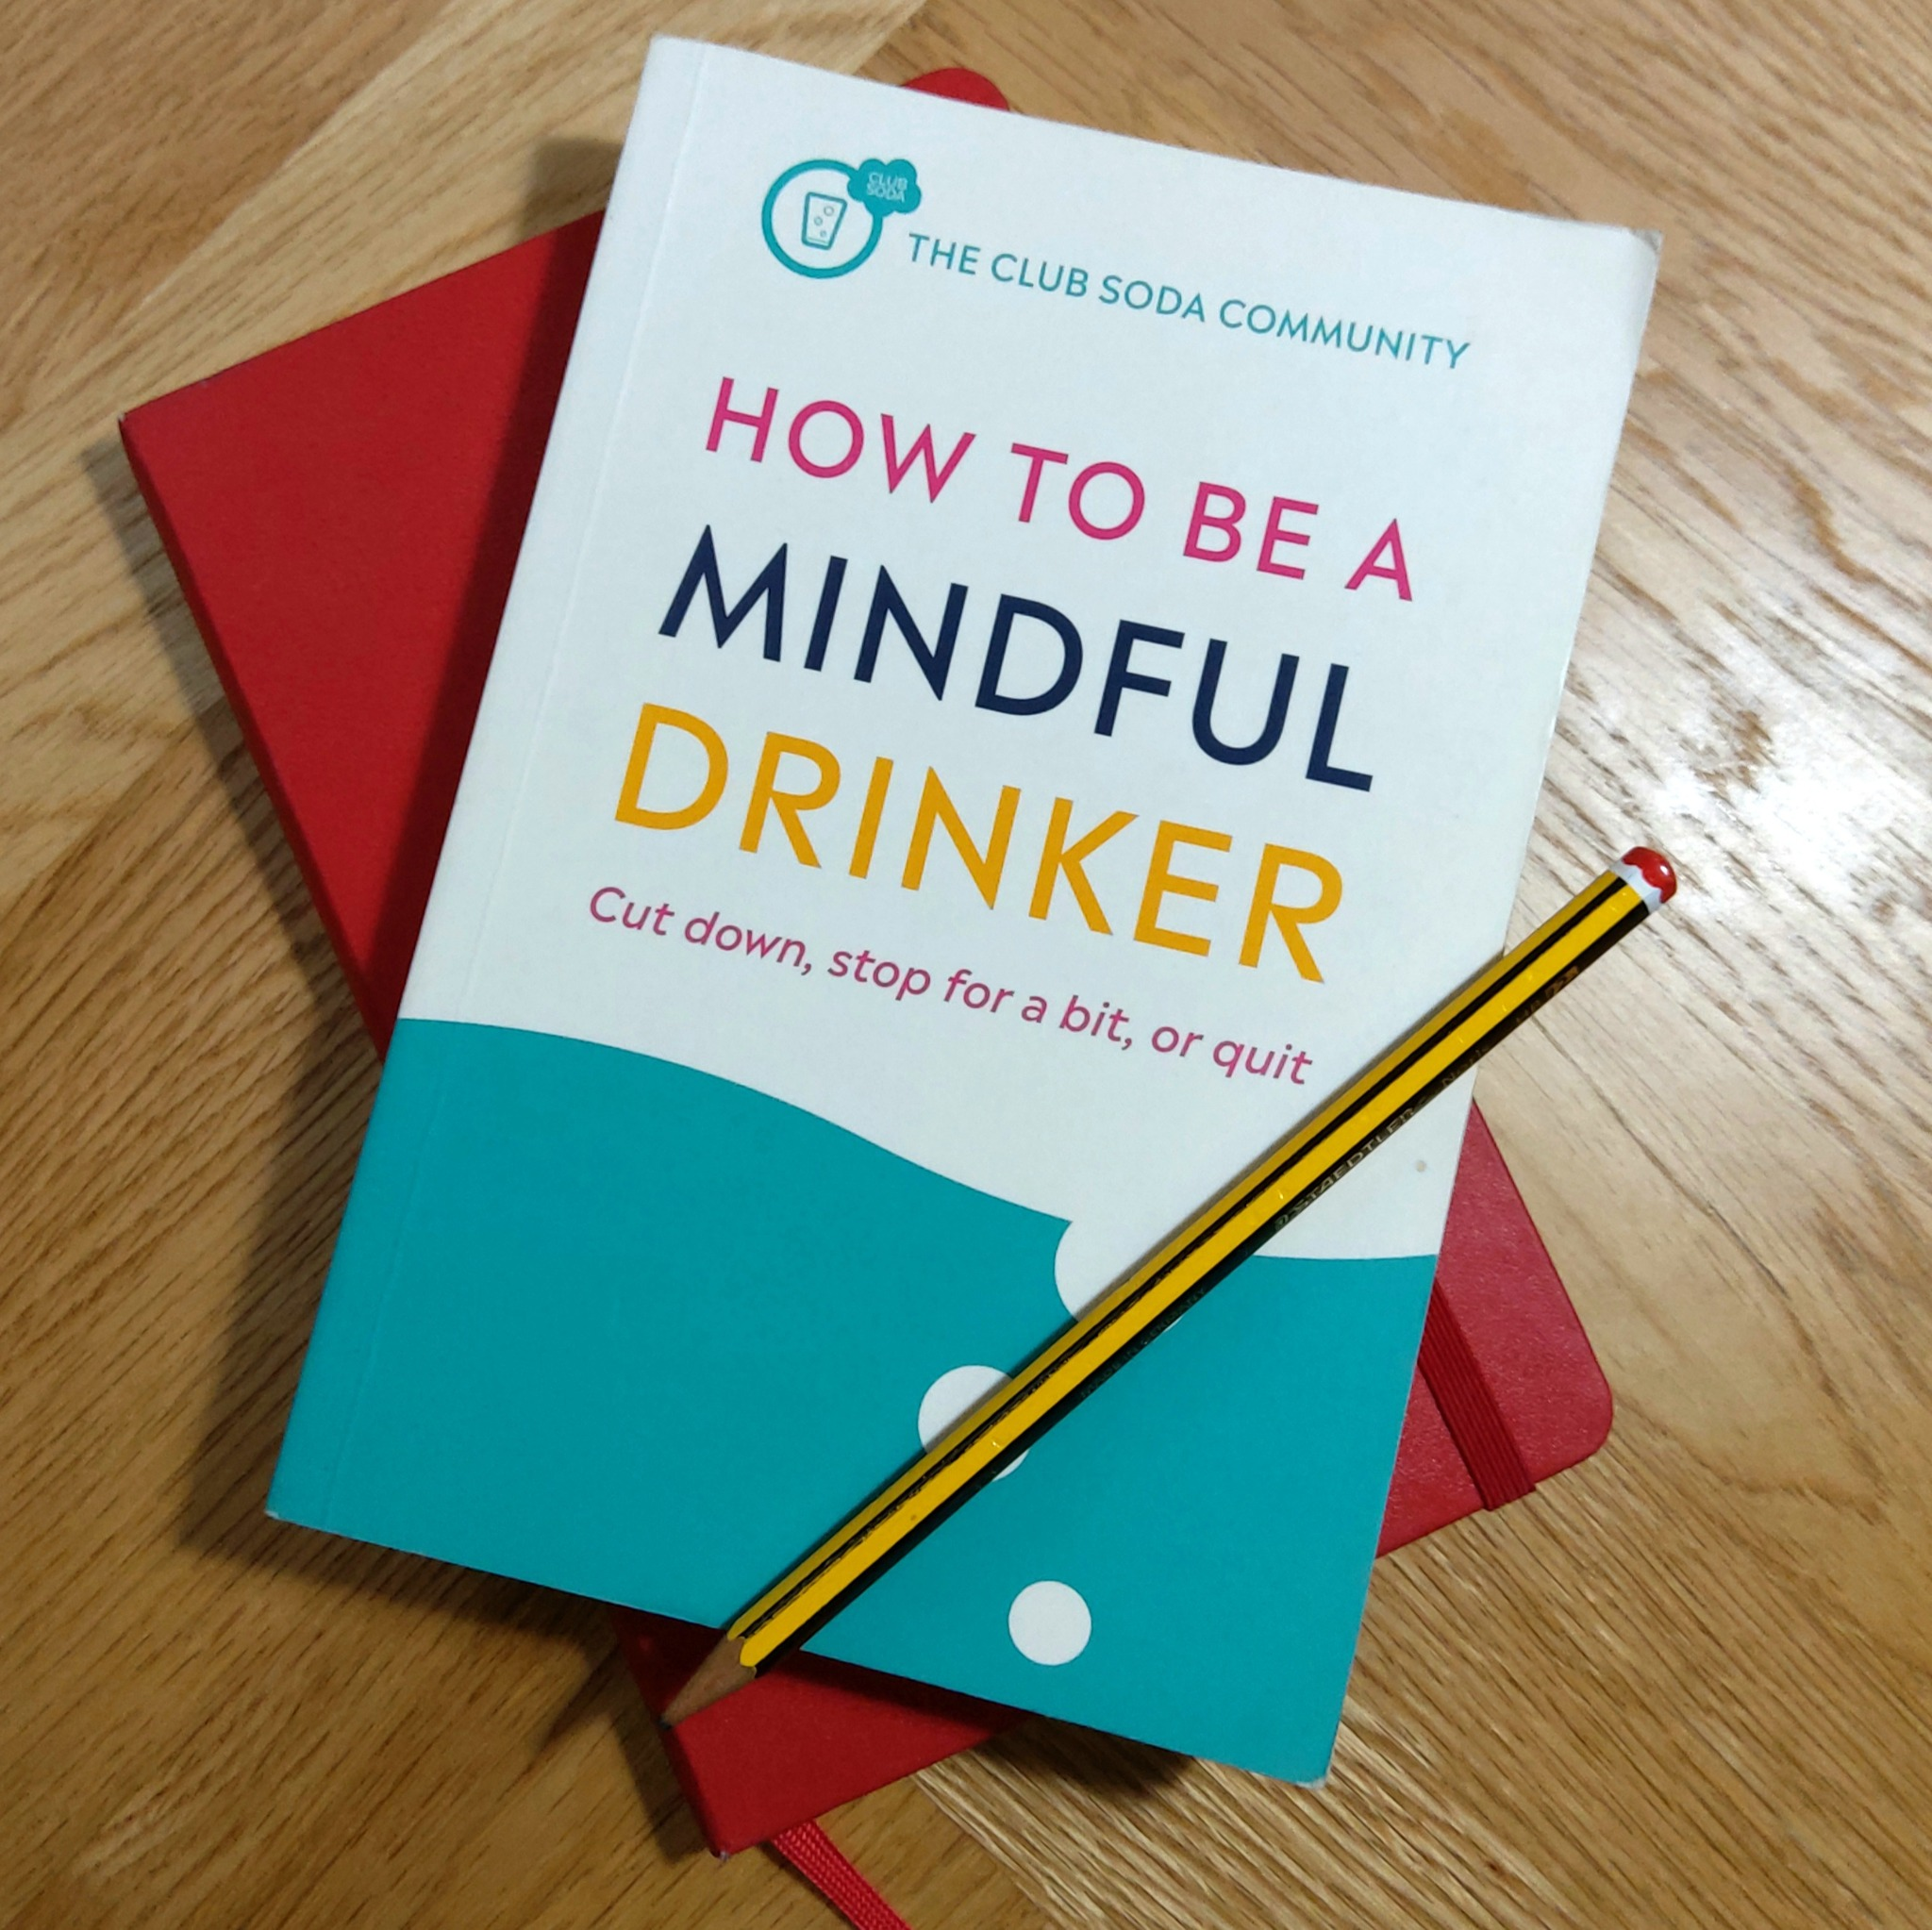 Picture of the book How to Be a Mindful Drinker by Dru Jaeger